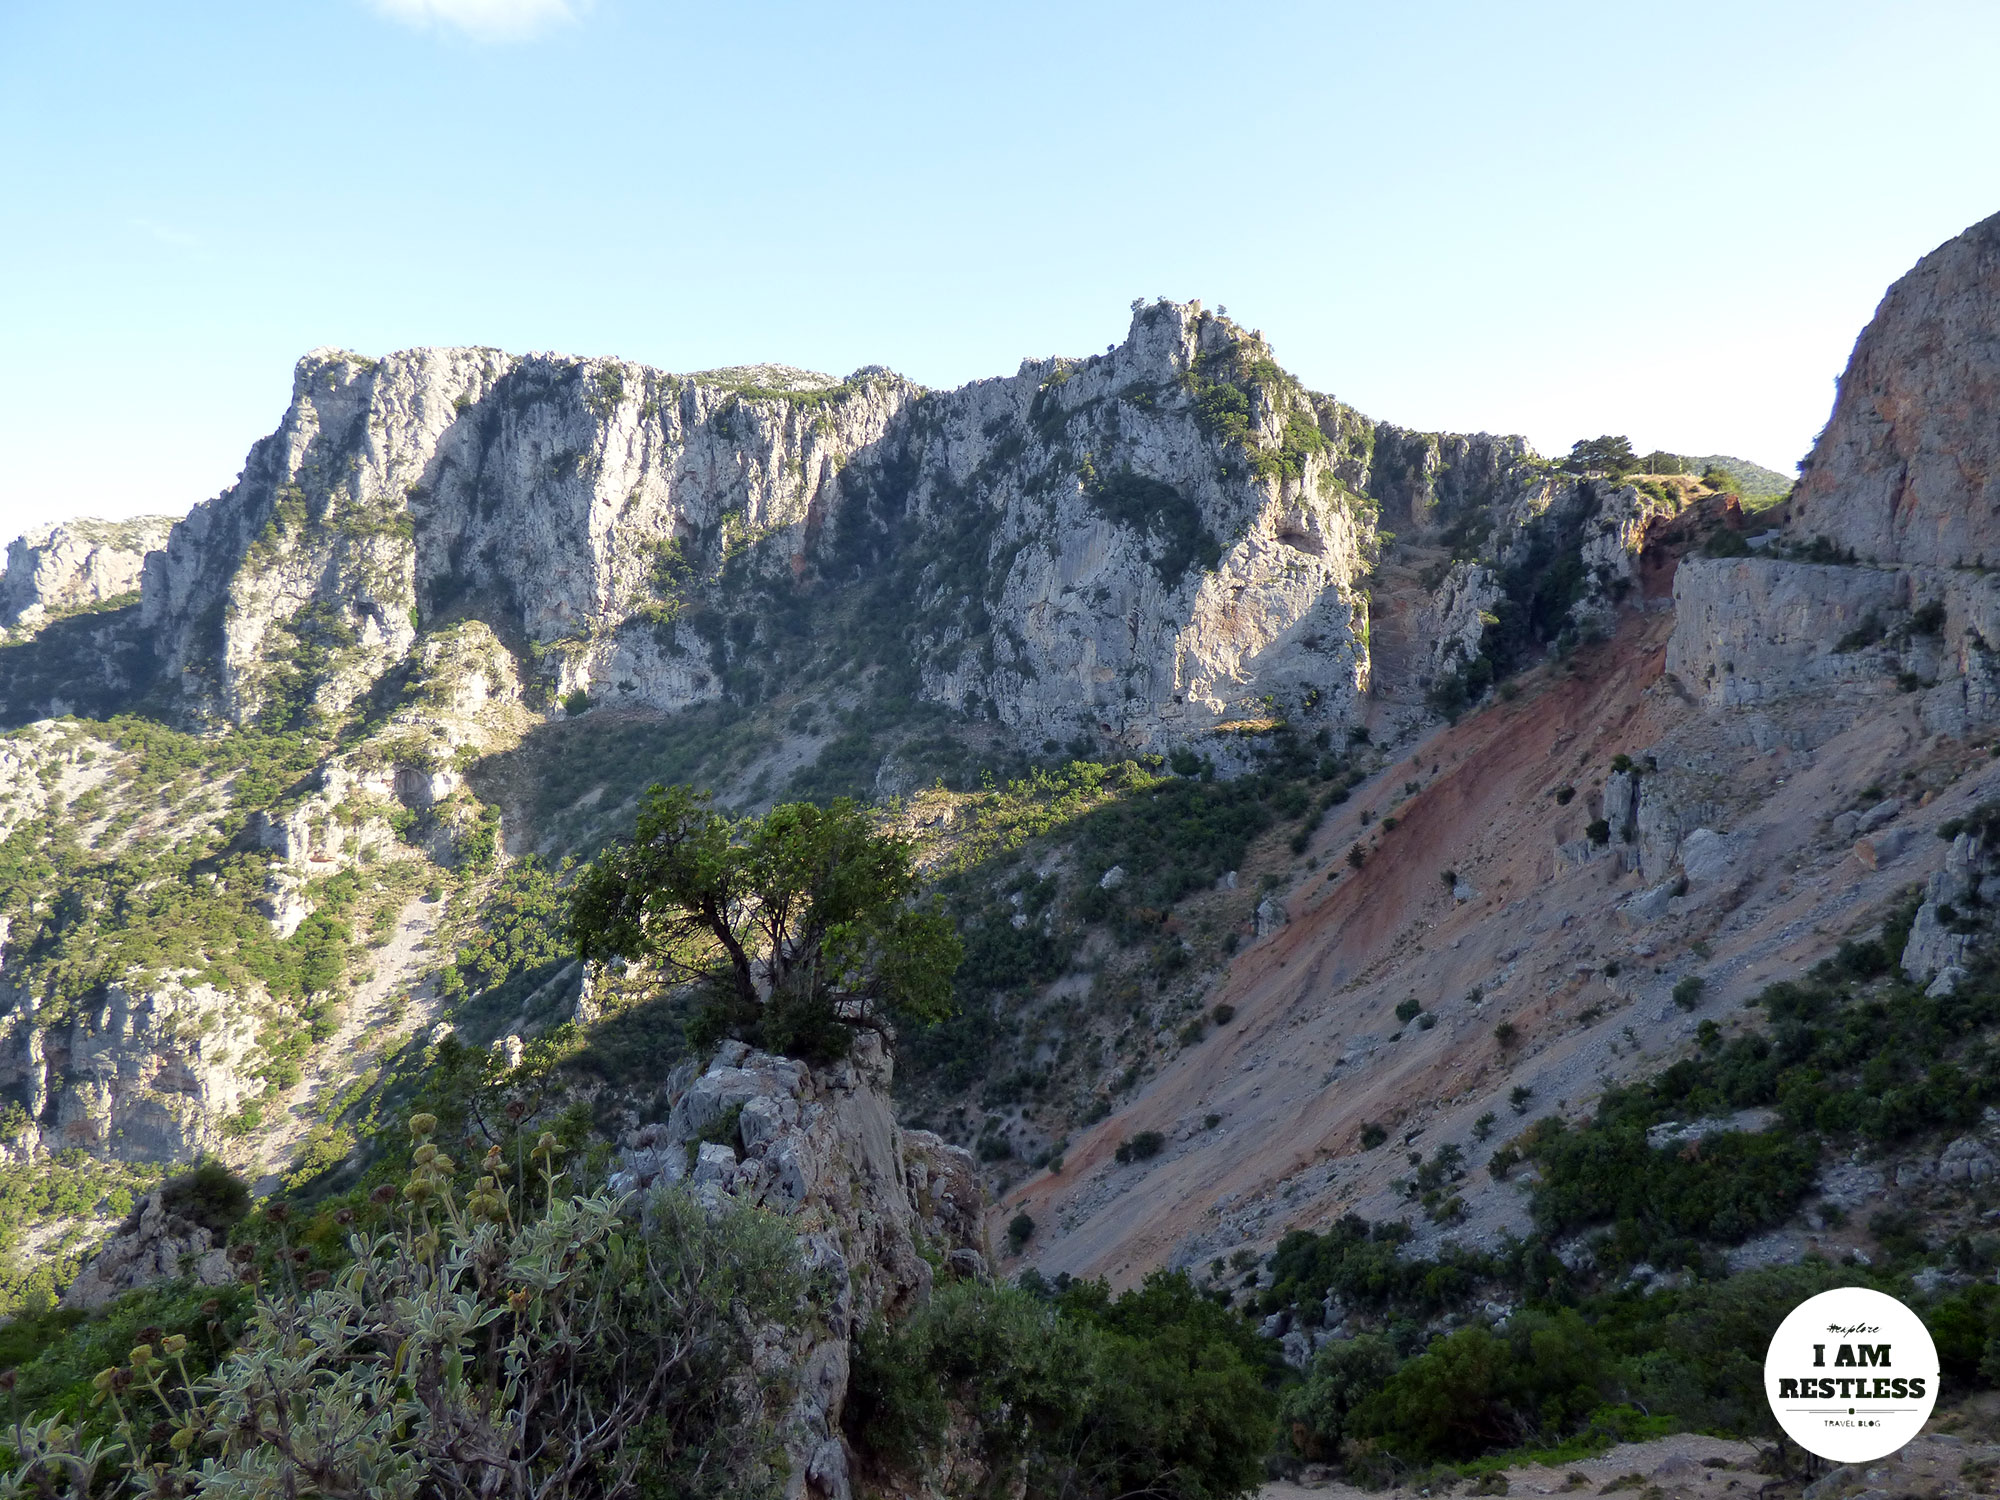 What-to-See-in-Greece-The-Scenic-Lookout-at-BellEkklisia-Agia-Paraskevi-Εκκλησία-Αγία-Παρασκευή---9.jpg